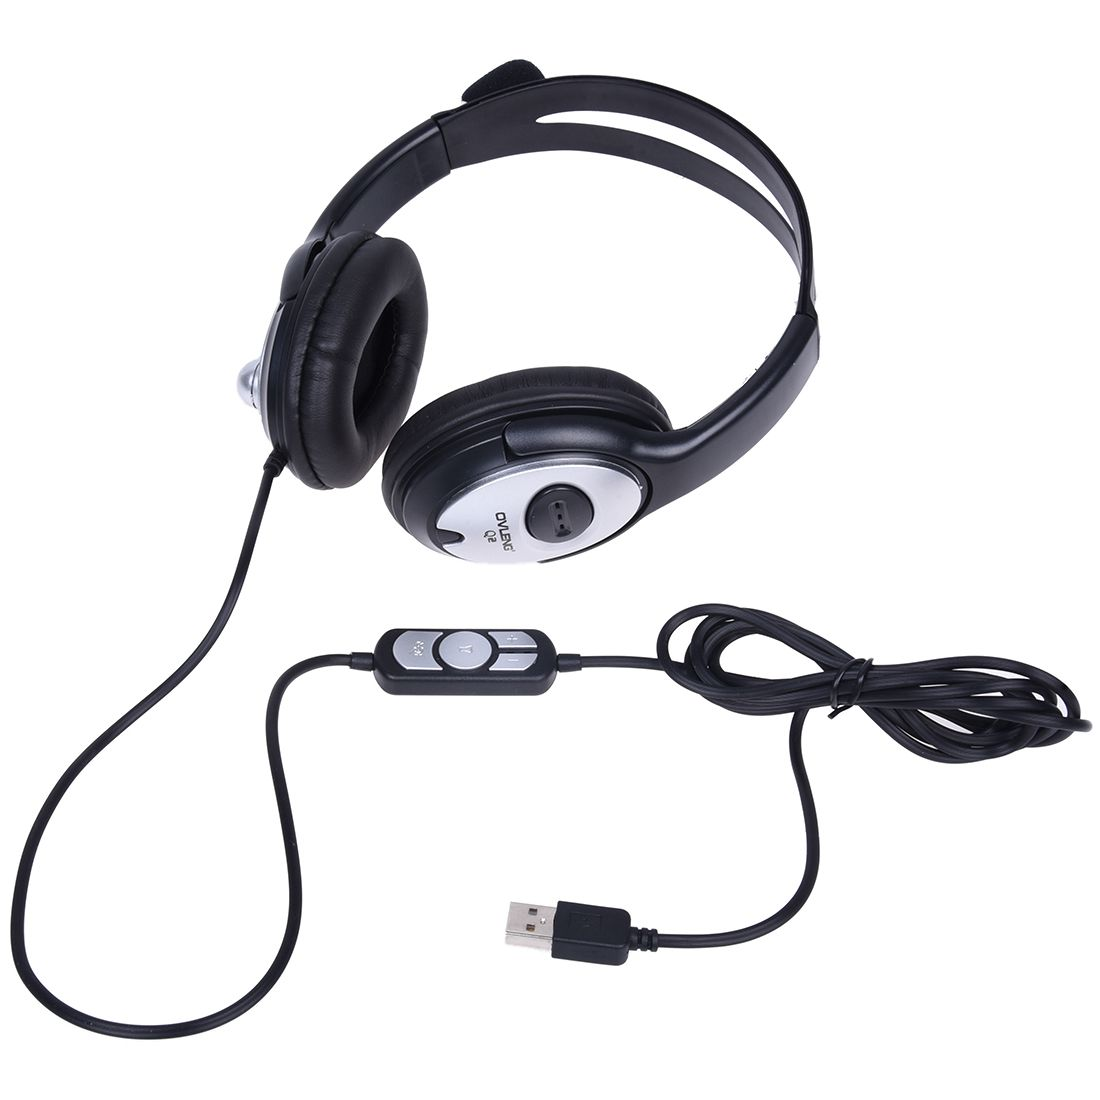 HOT-USB Stereo Headphone Earphone with MIC for Gaming Console Surround Sound PC Headset ...